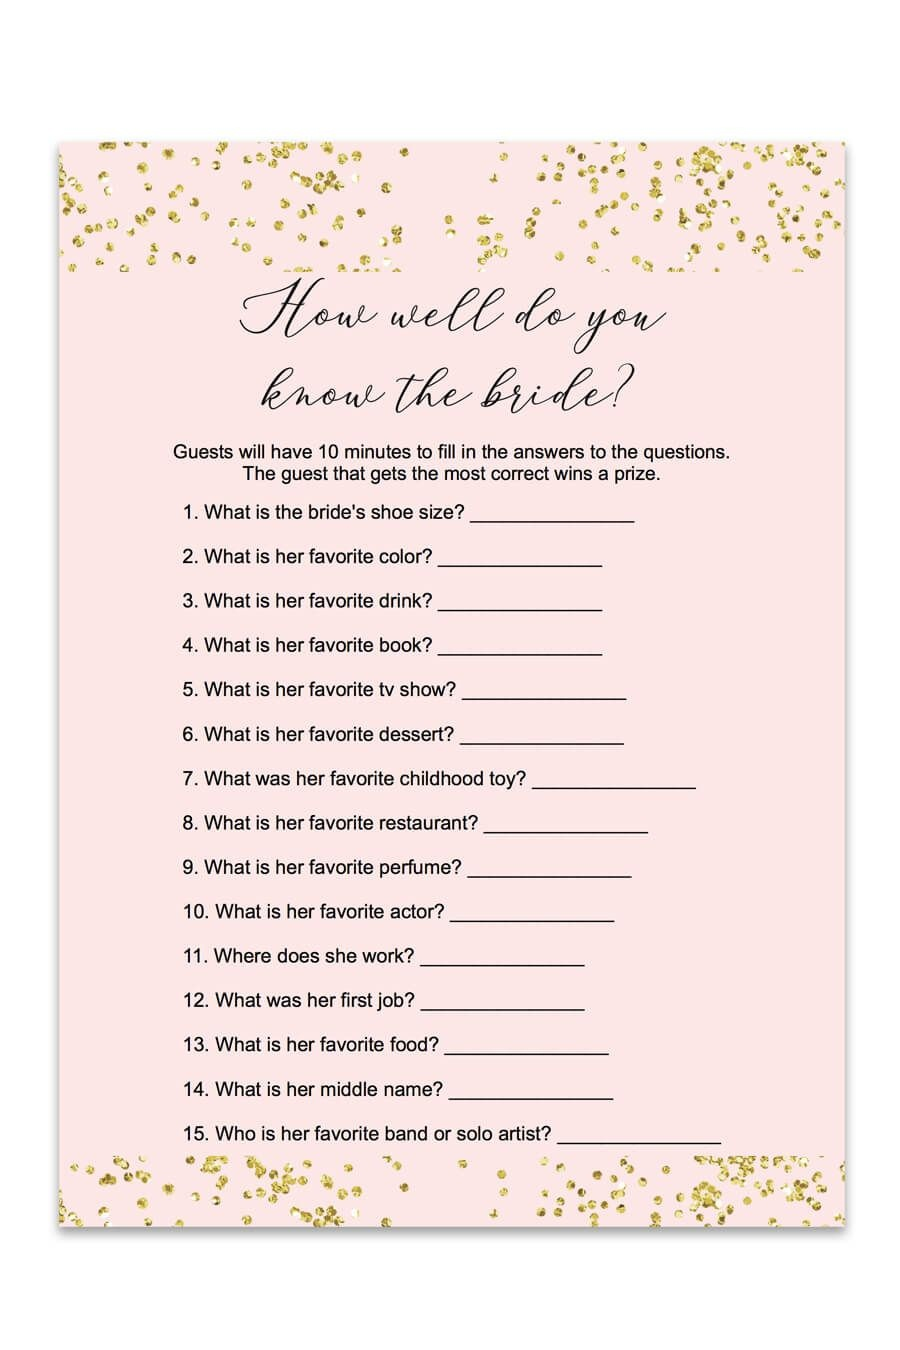 Blush And Confetti How Well Do You Know The Bride Game | Love<3 - Free Printable Bridal Shower Games Word Scramble